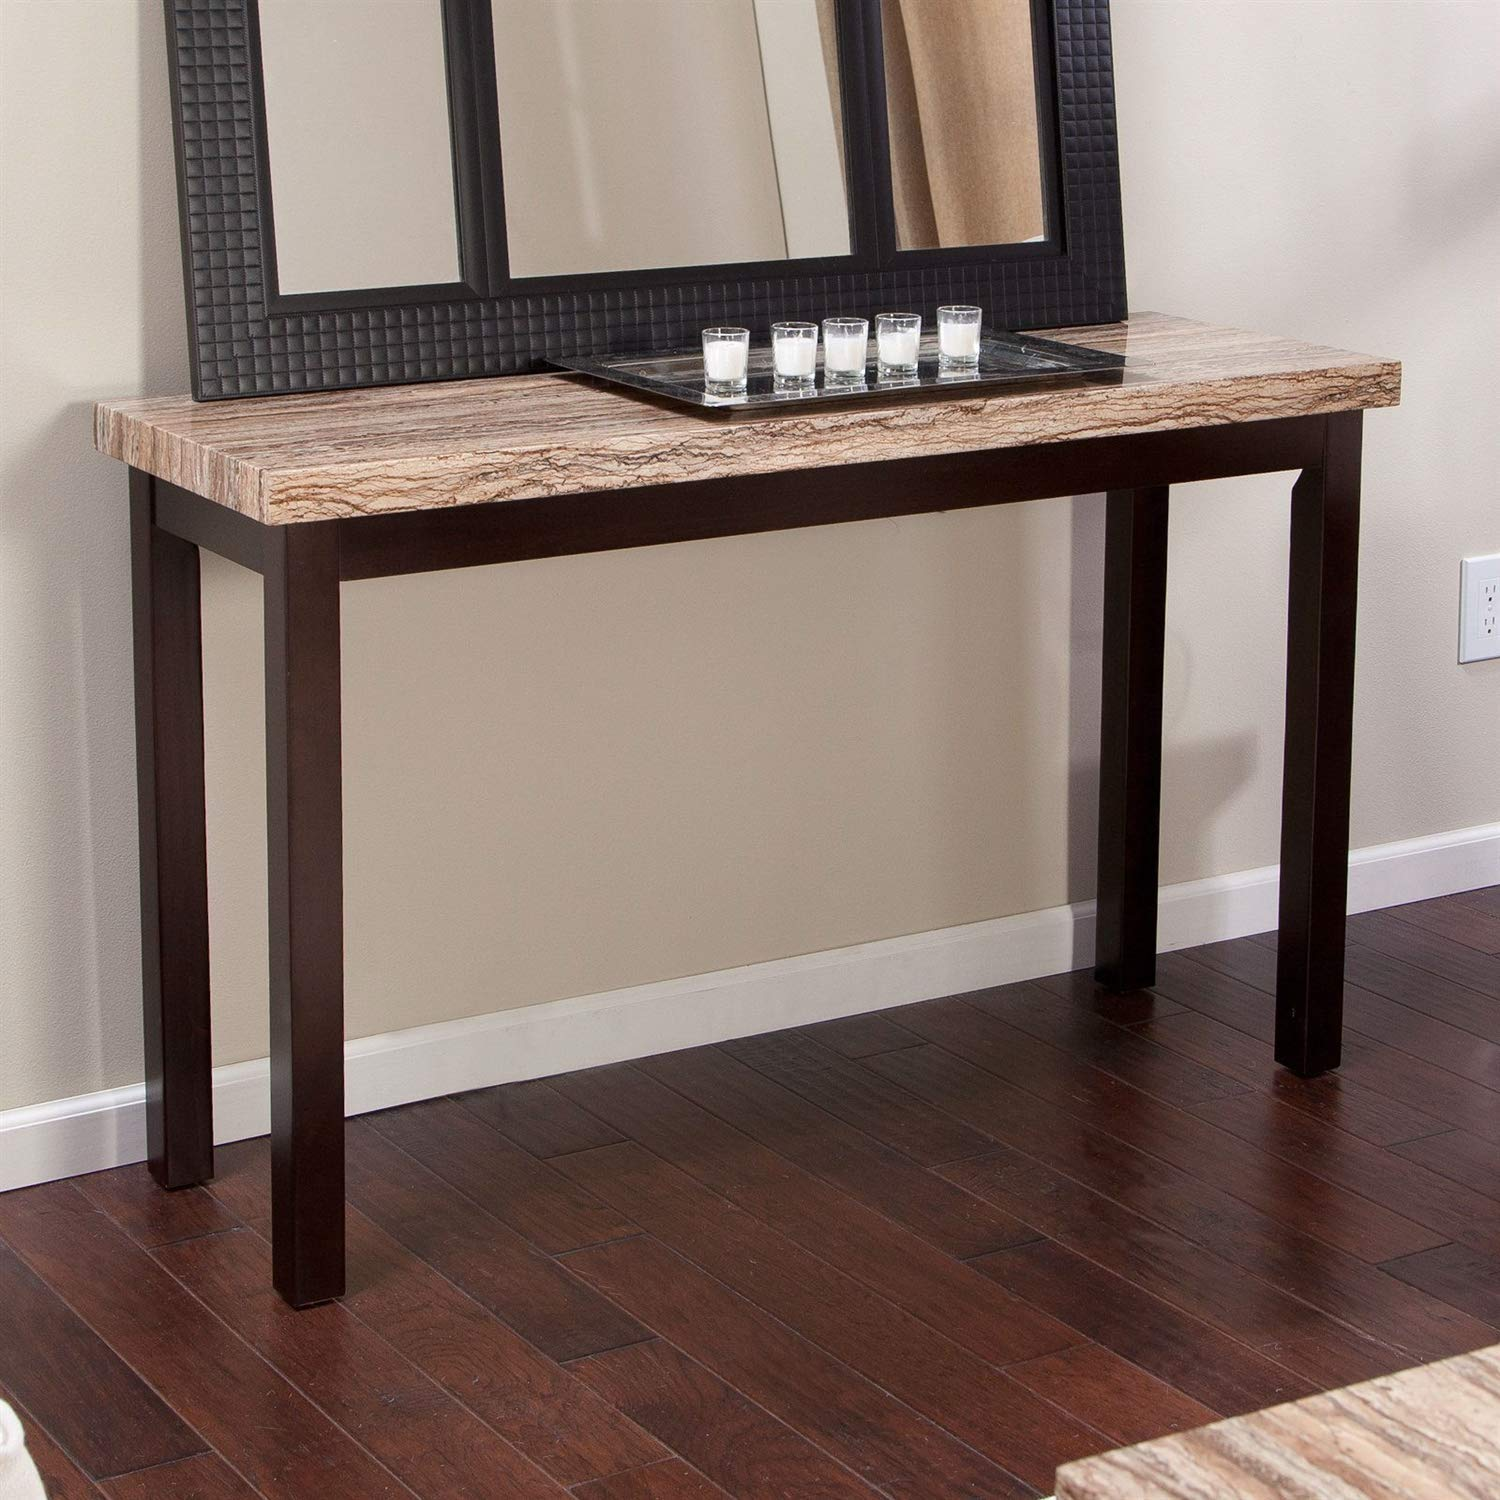 Trustpurchase Solid Wood Frame Console Sofa Table in Espresso with Faux Marble Top, has A Handsome Surface That's A Perfect Complement for Your Leather Sectional, Made from Solid Hardwood